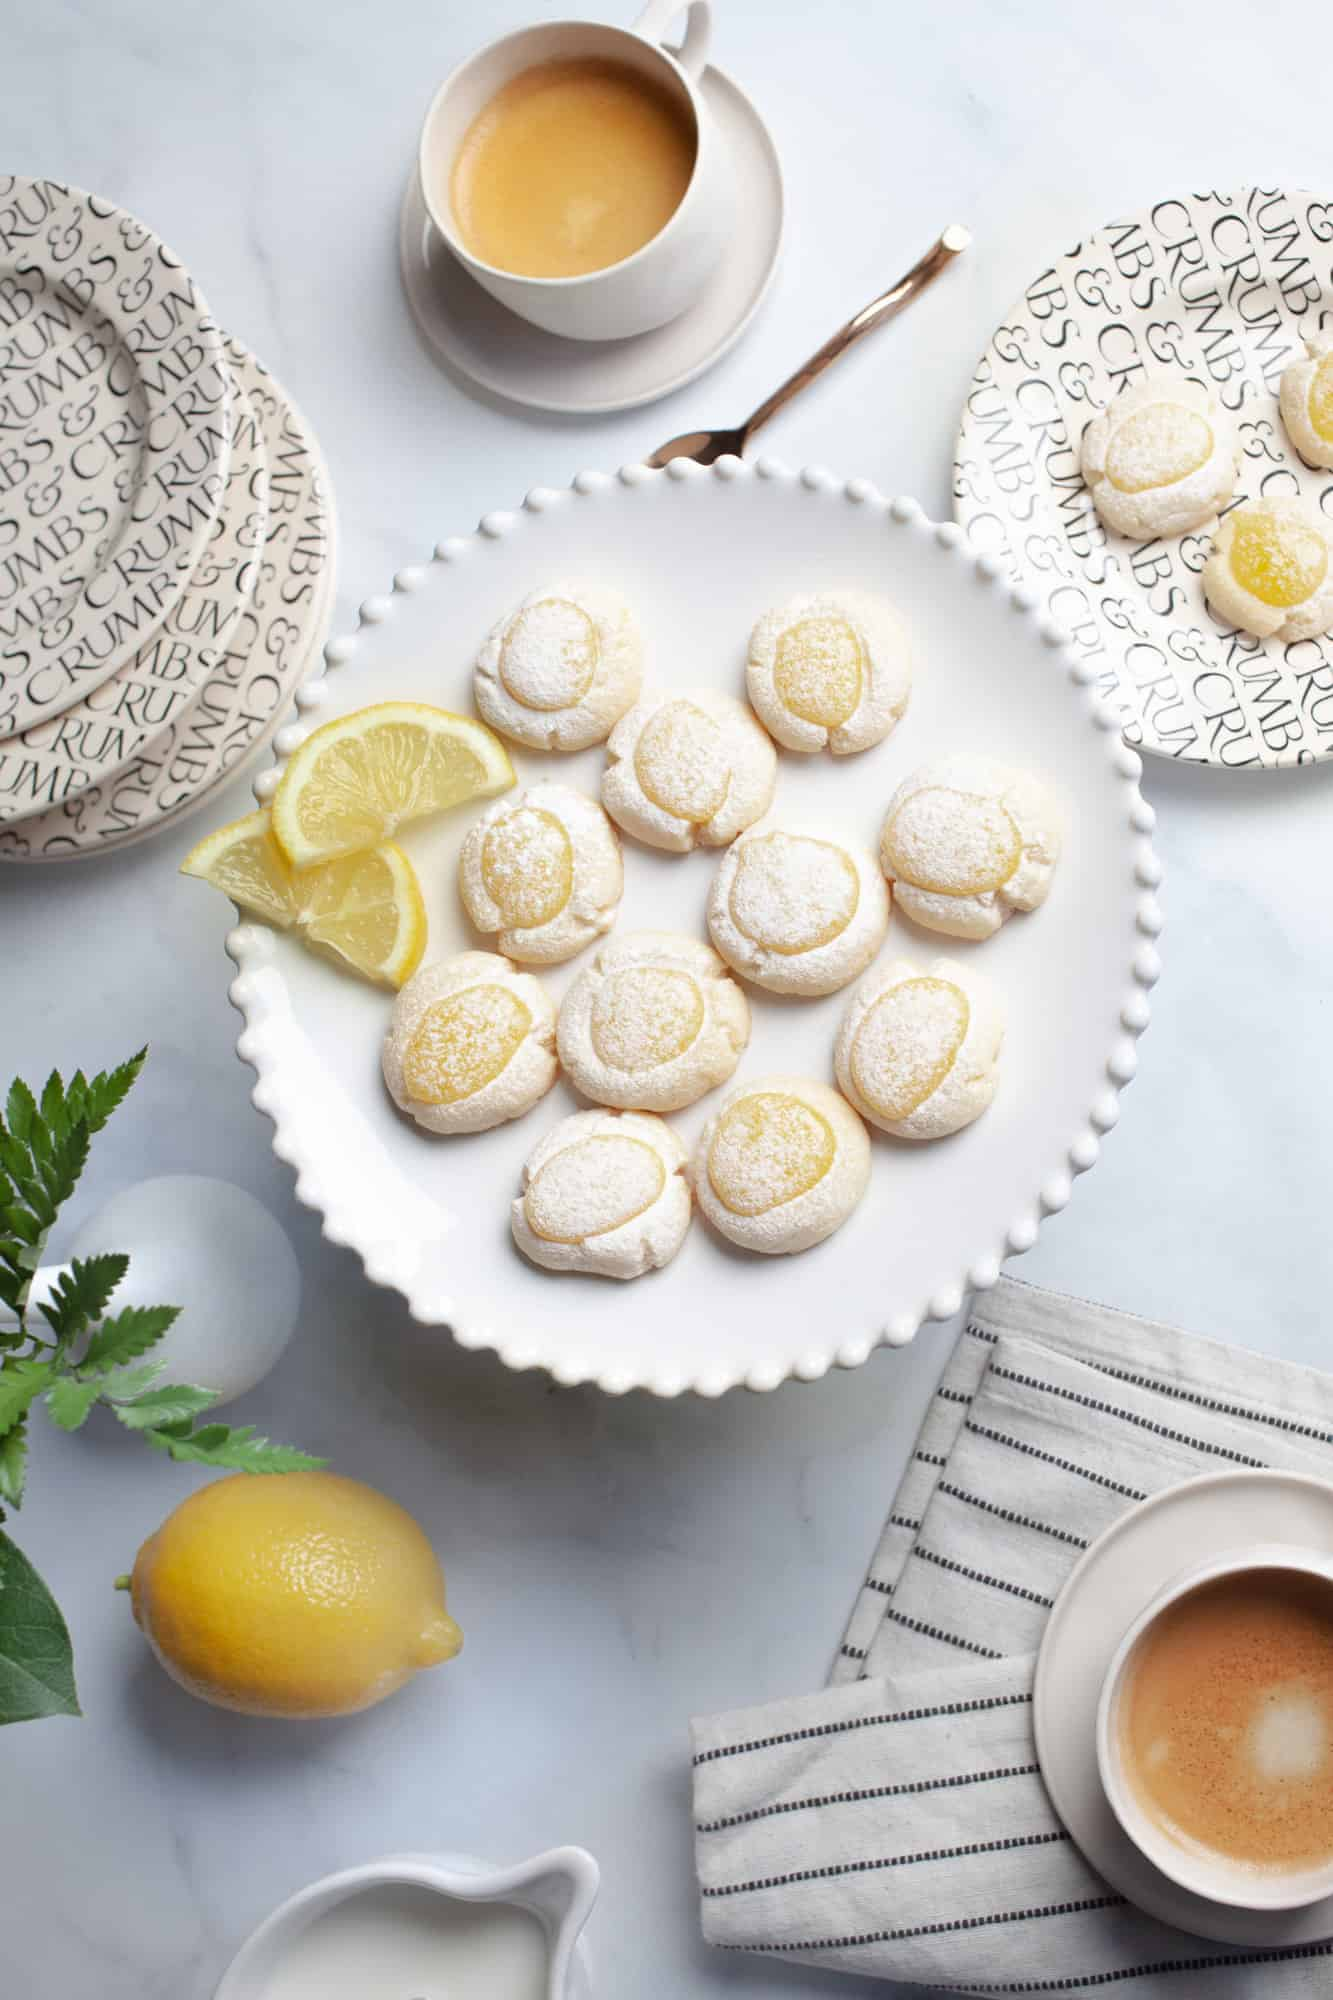 plate of lemon filled cookies with two cups of coffee and a lemon and black and white dishes